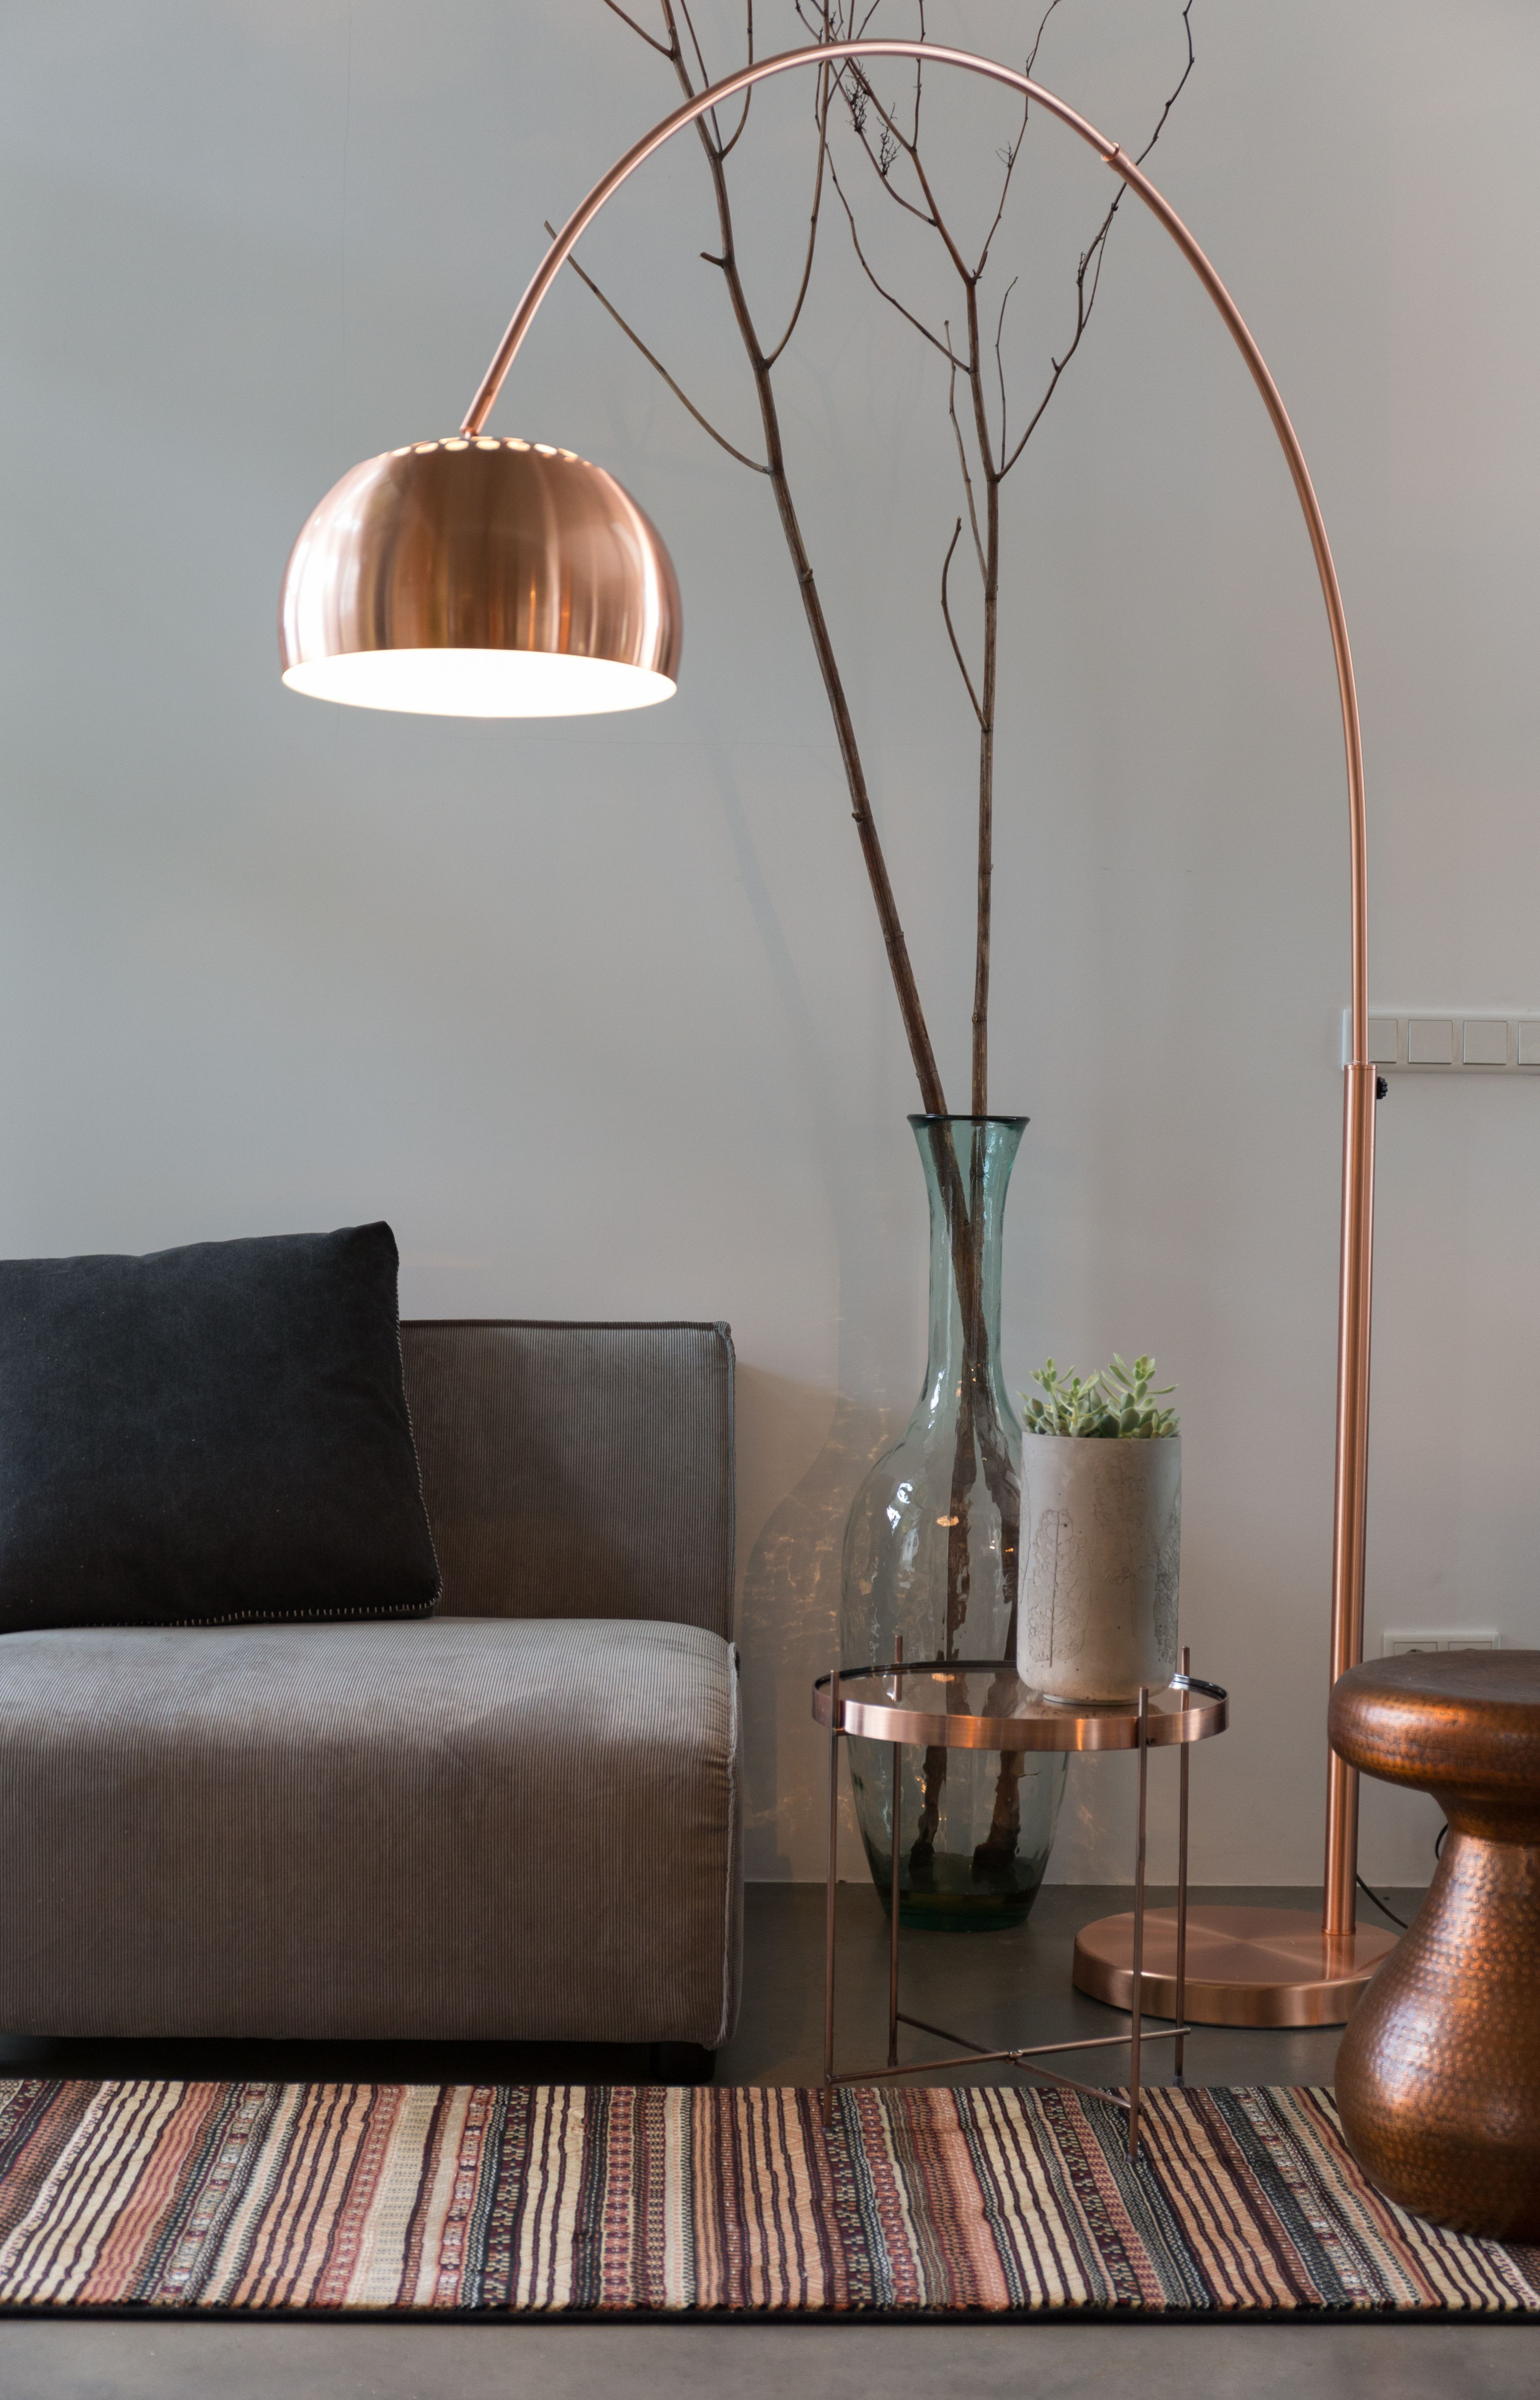 Living Room Lighting Ideas For Homes Of Every Size Color And Style Get Inspired With These Bright Ideas Woodworkin Floor Lamps Living Room Lamps Living Room